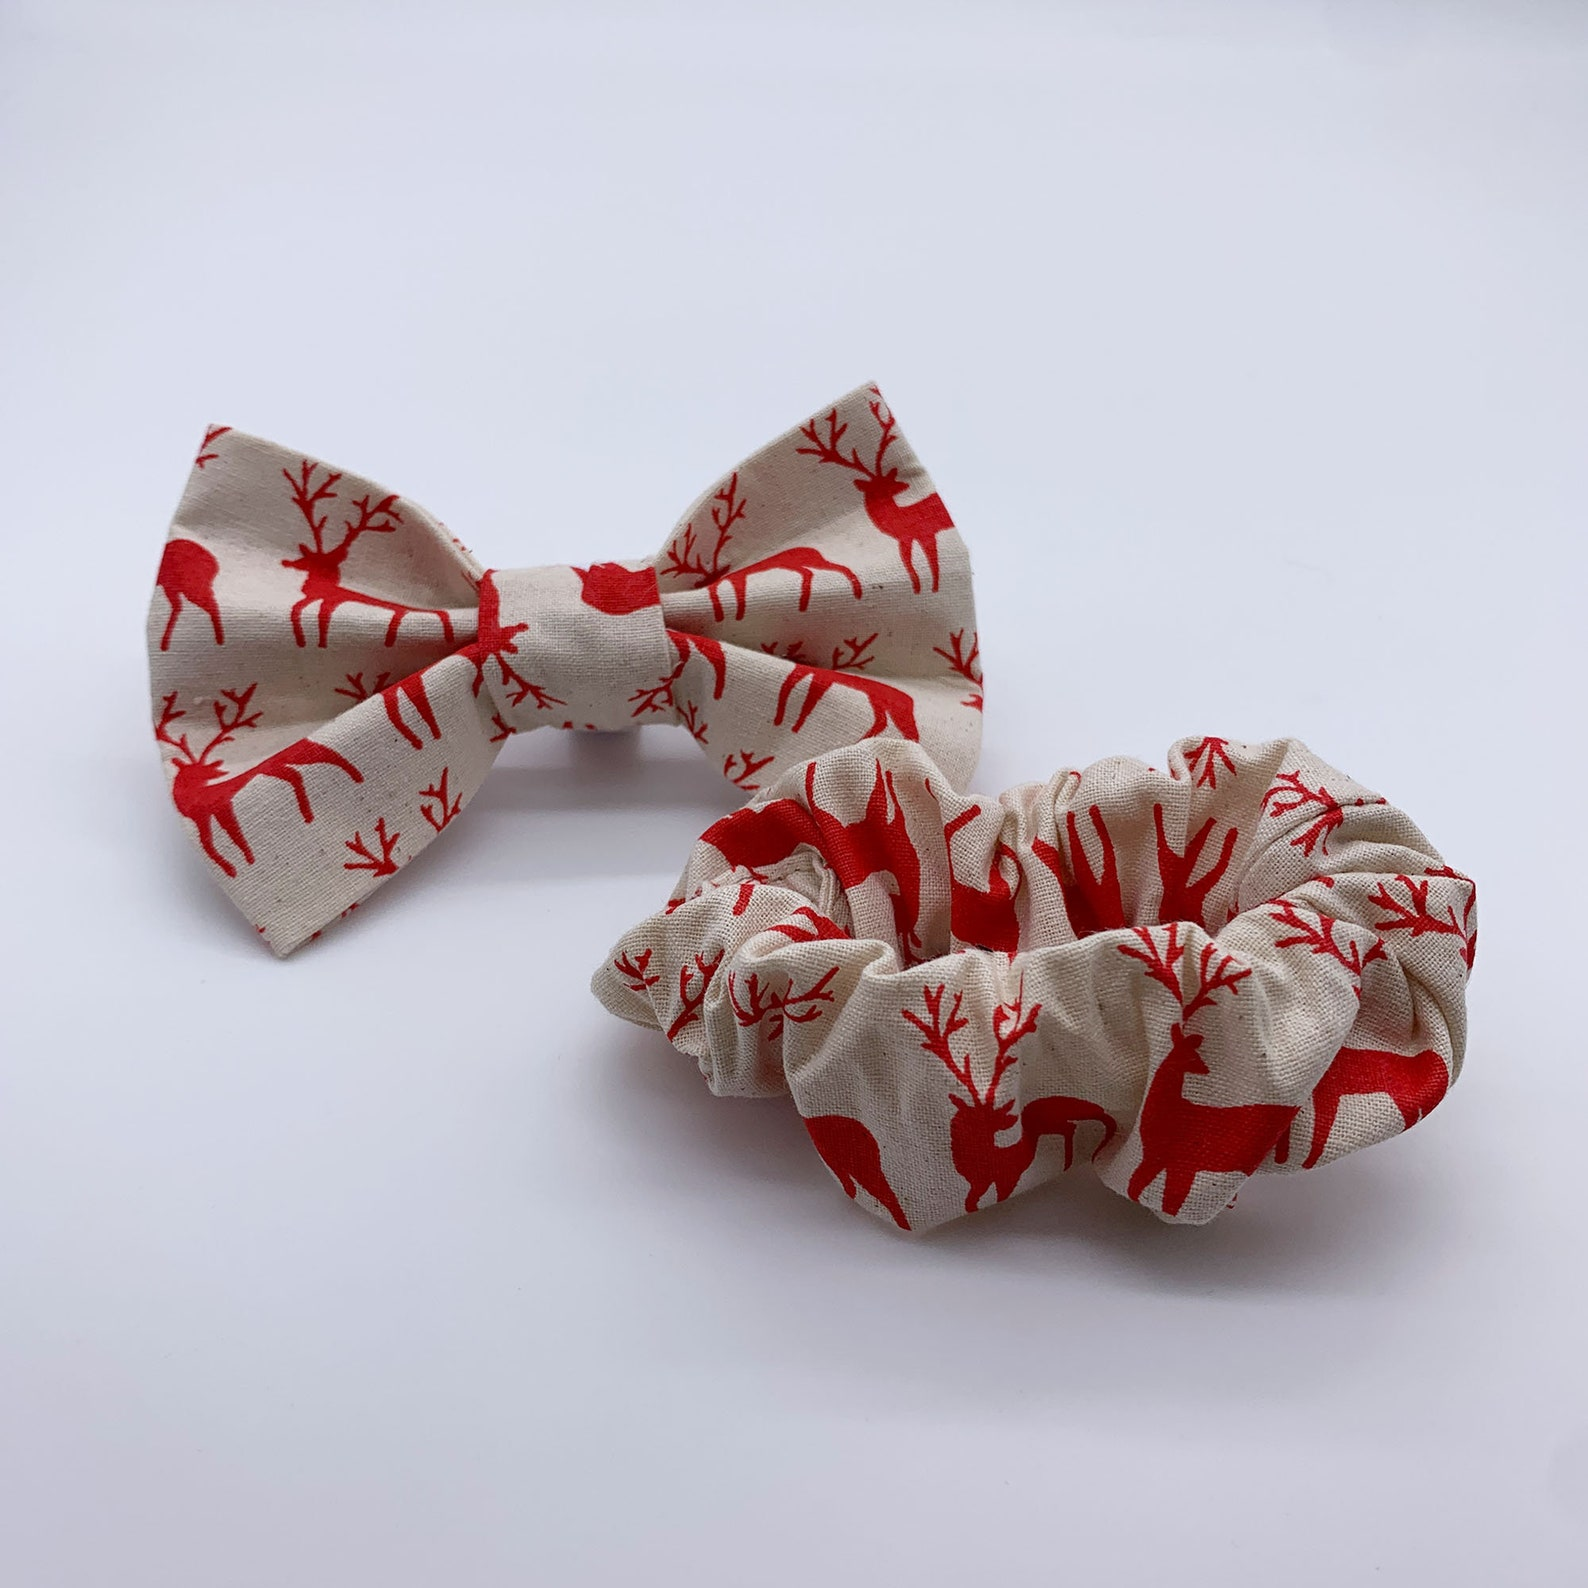 Matching scrunchie and dog bow tie for Christmas